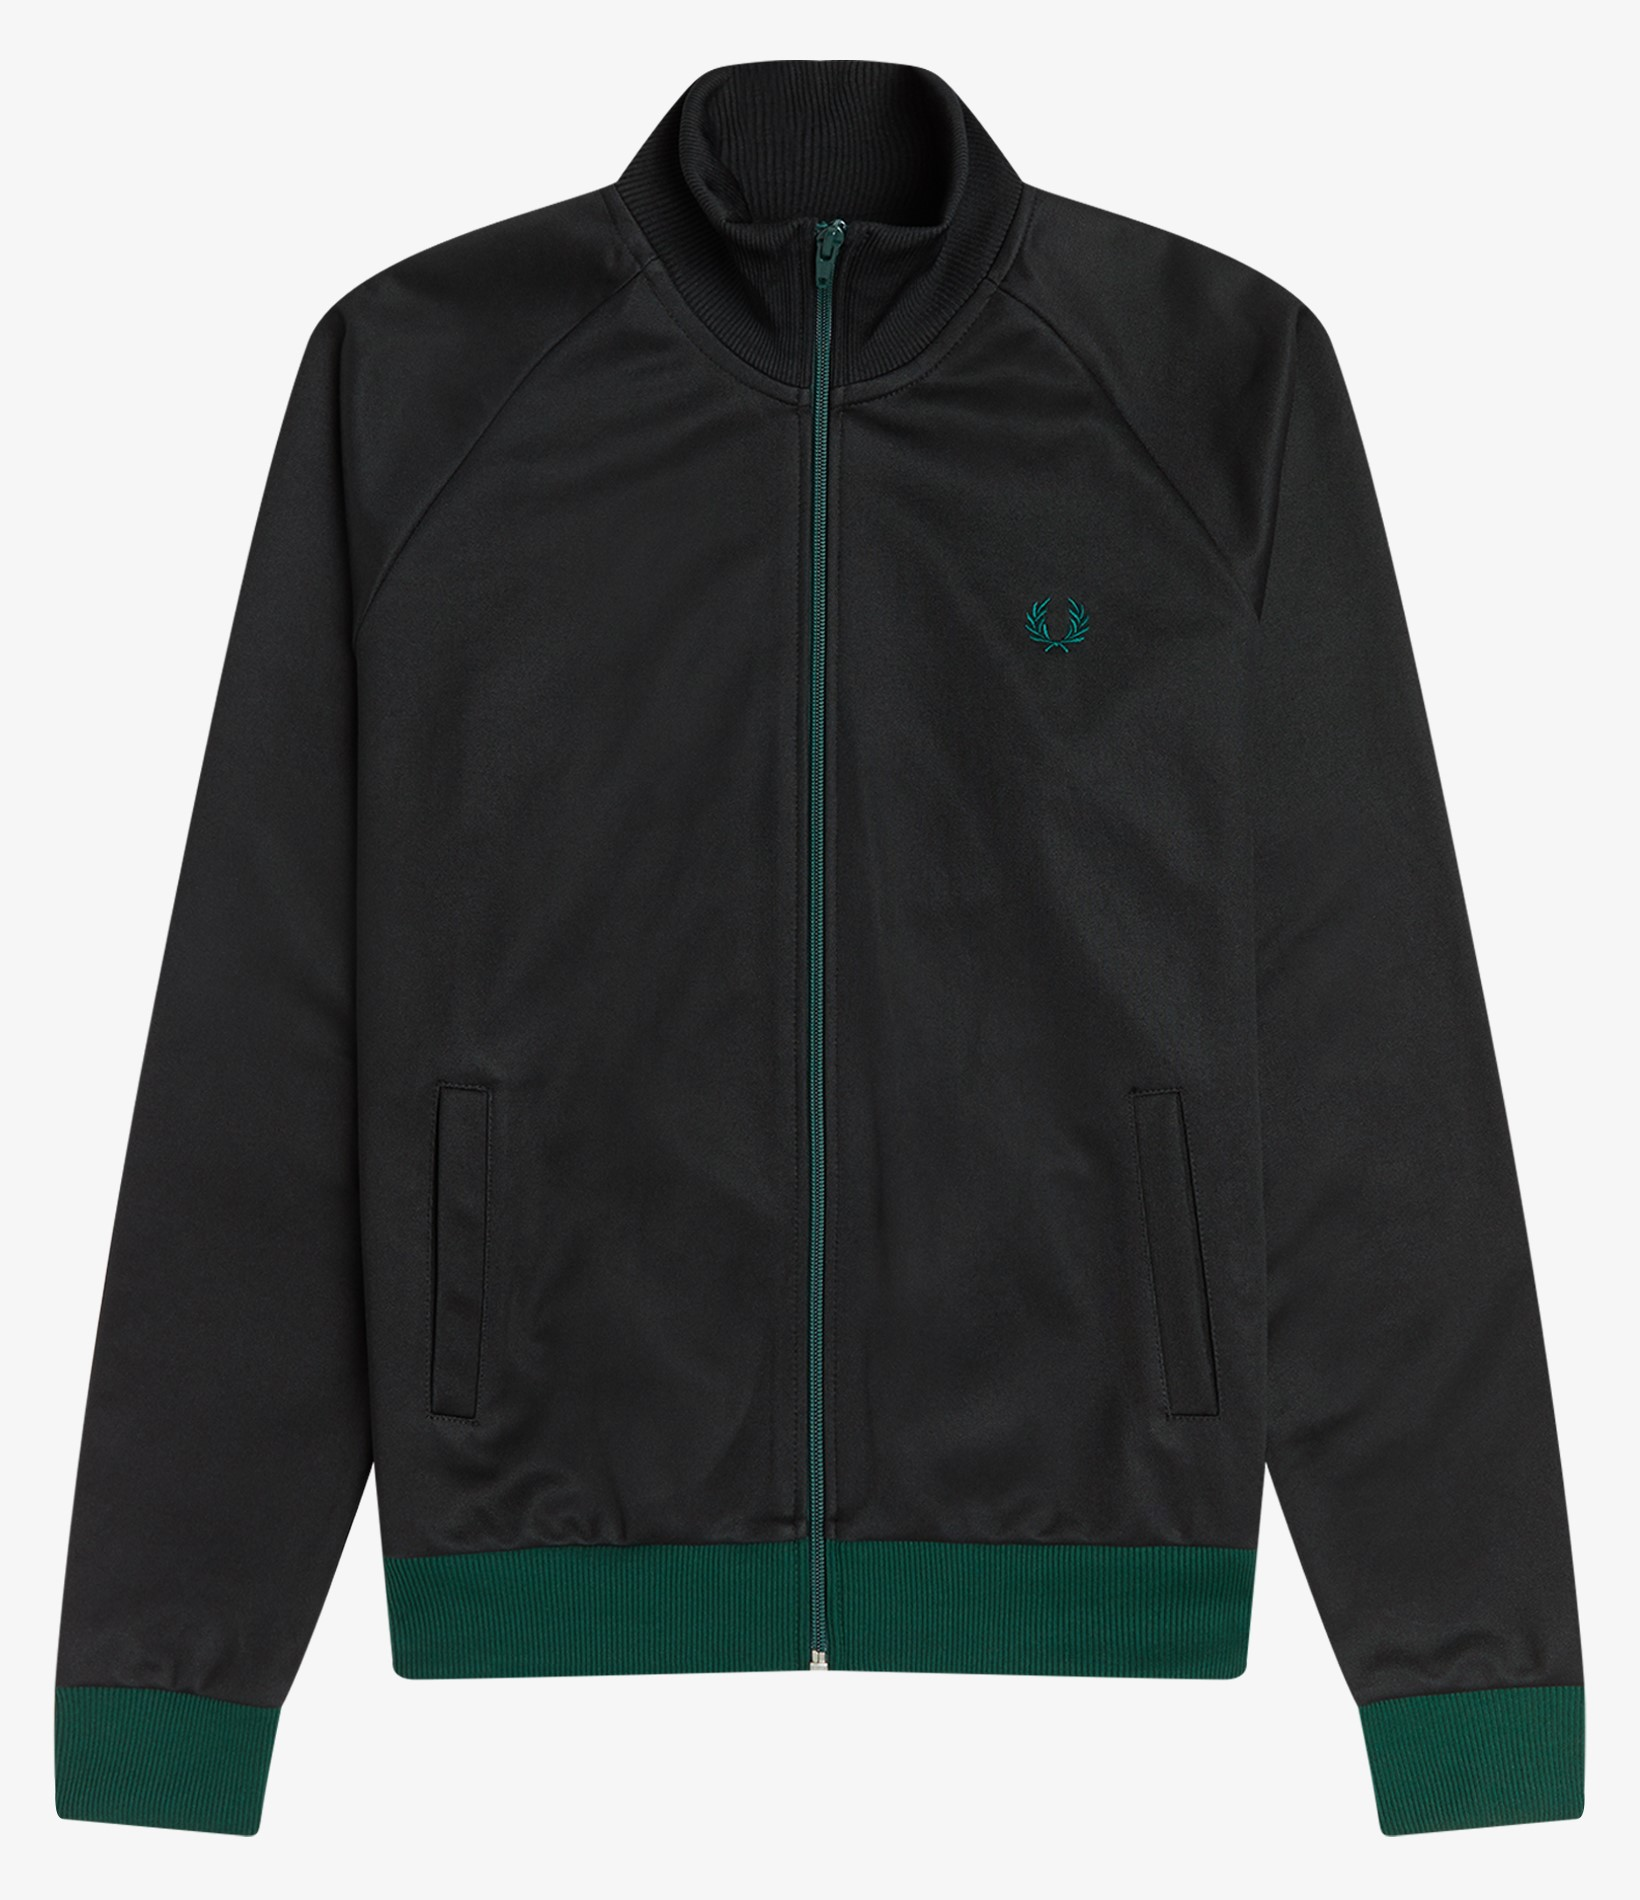 Fred Perry - CONTRAST TRIM TRACK JACKET - Black